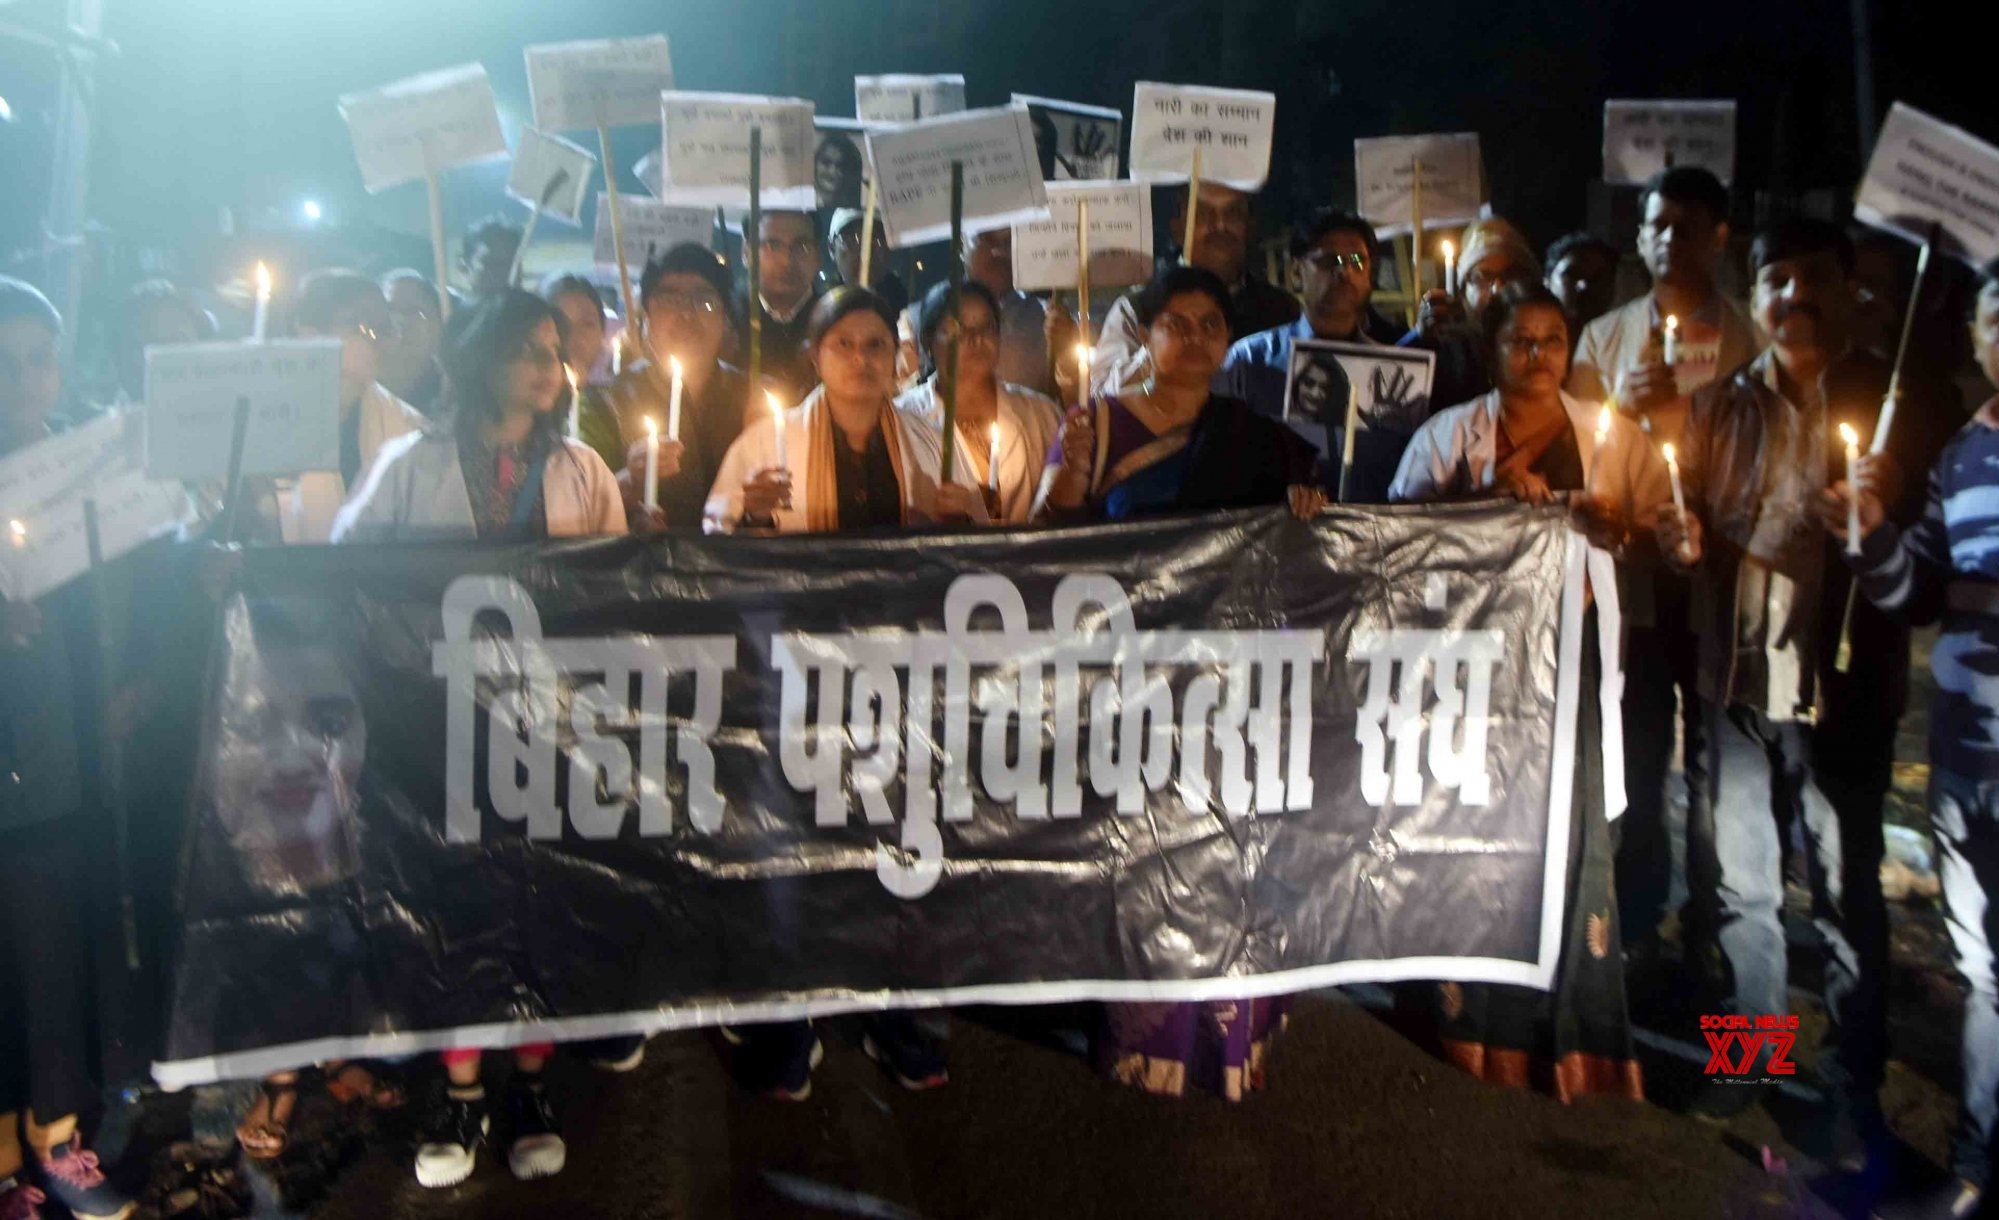 Patna: Candlelight vigil to protest against Hyderabad gang rape - murder #Gallery